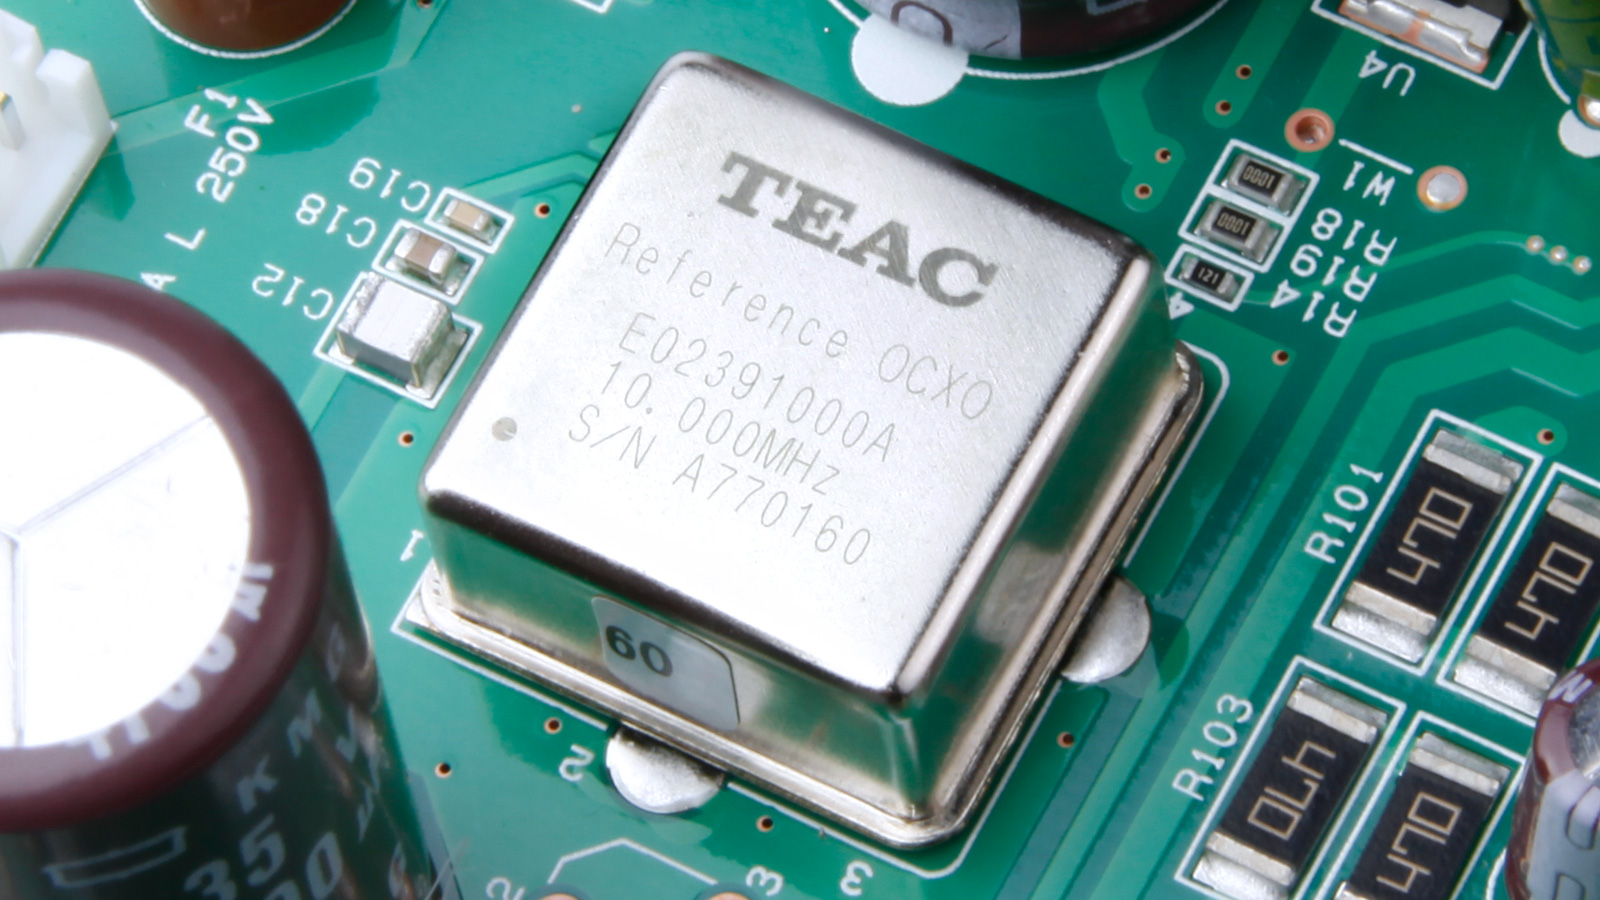 Cg 10m Features Teac International Website Sound Effects Generator Circuit Since Temperature Has A Huge Effect On Accuracy Of The Crystal Oscillator Minimising Changes And Maintaining It At An Ideal Level Are Extremely